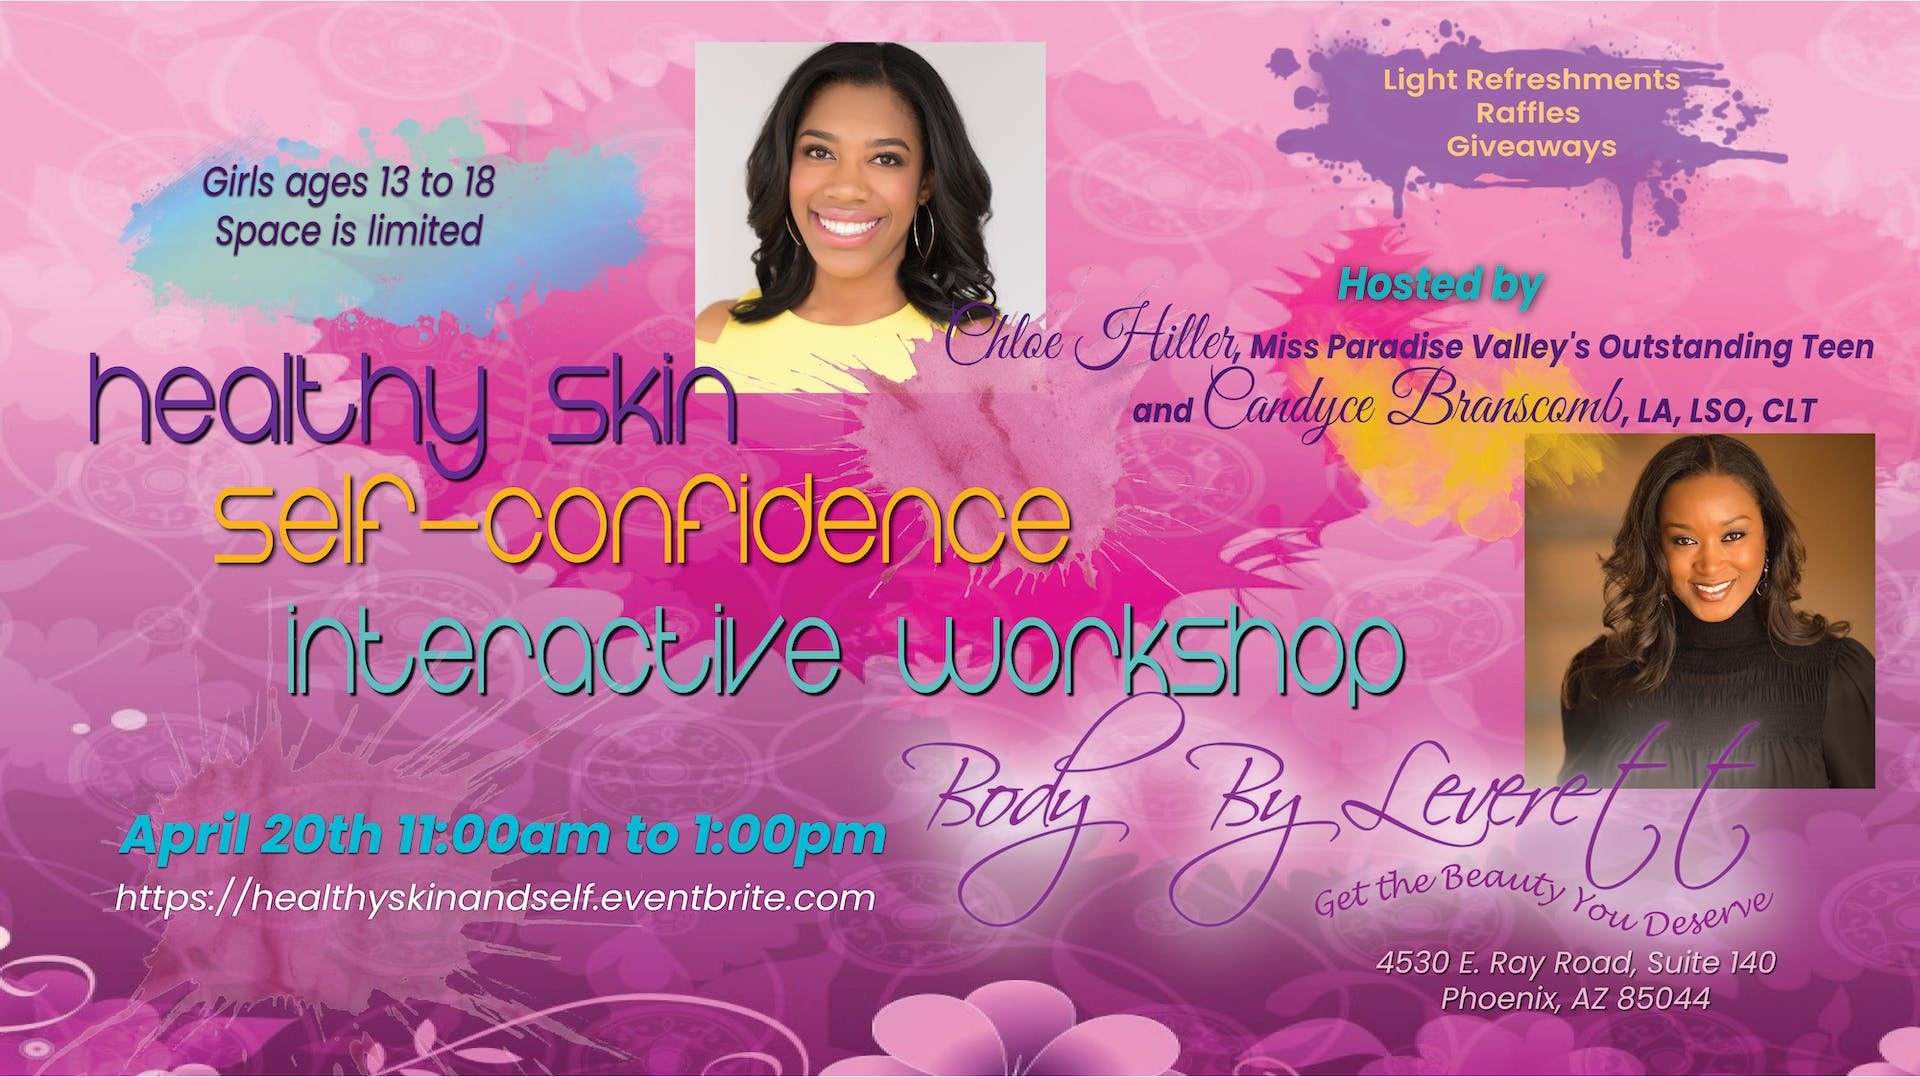 Healthy Skin, Self-Confidence - Interactive Workshop for Teen Girls